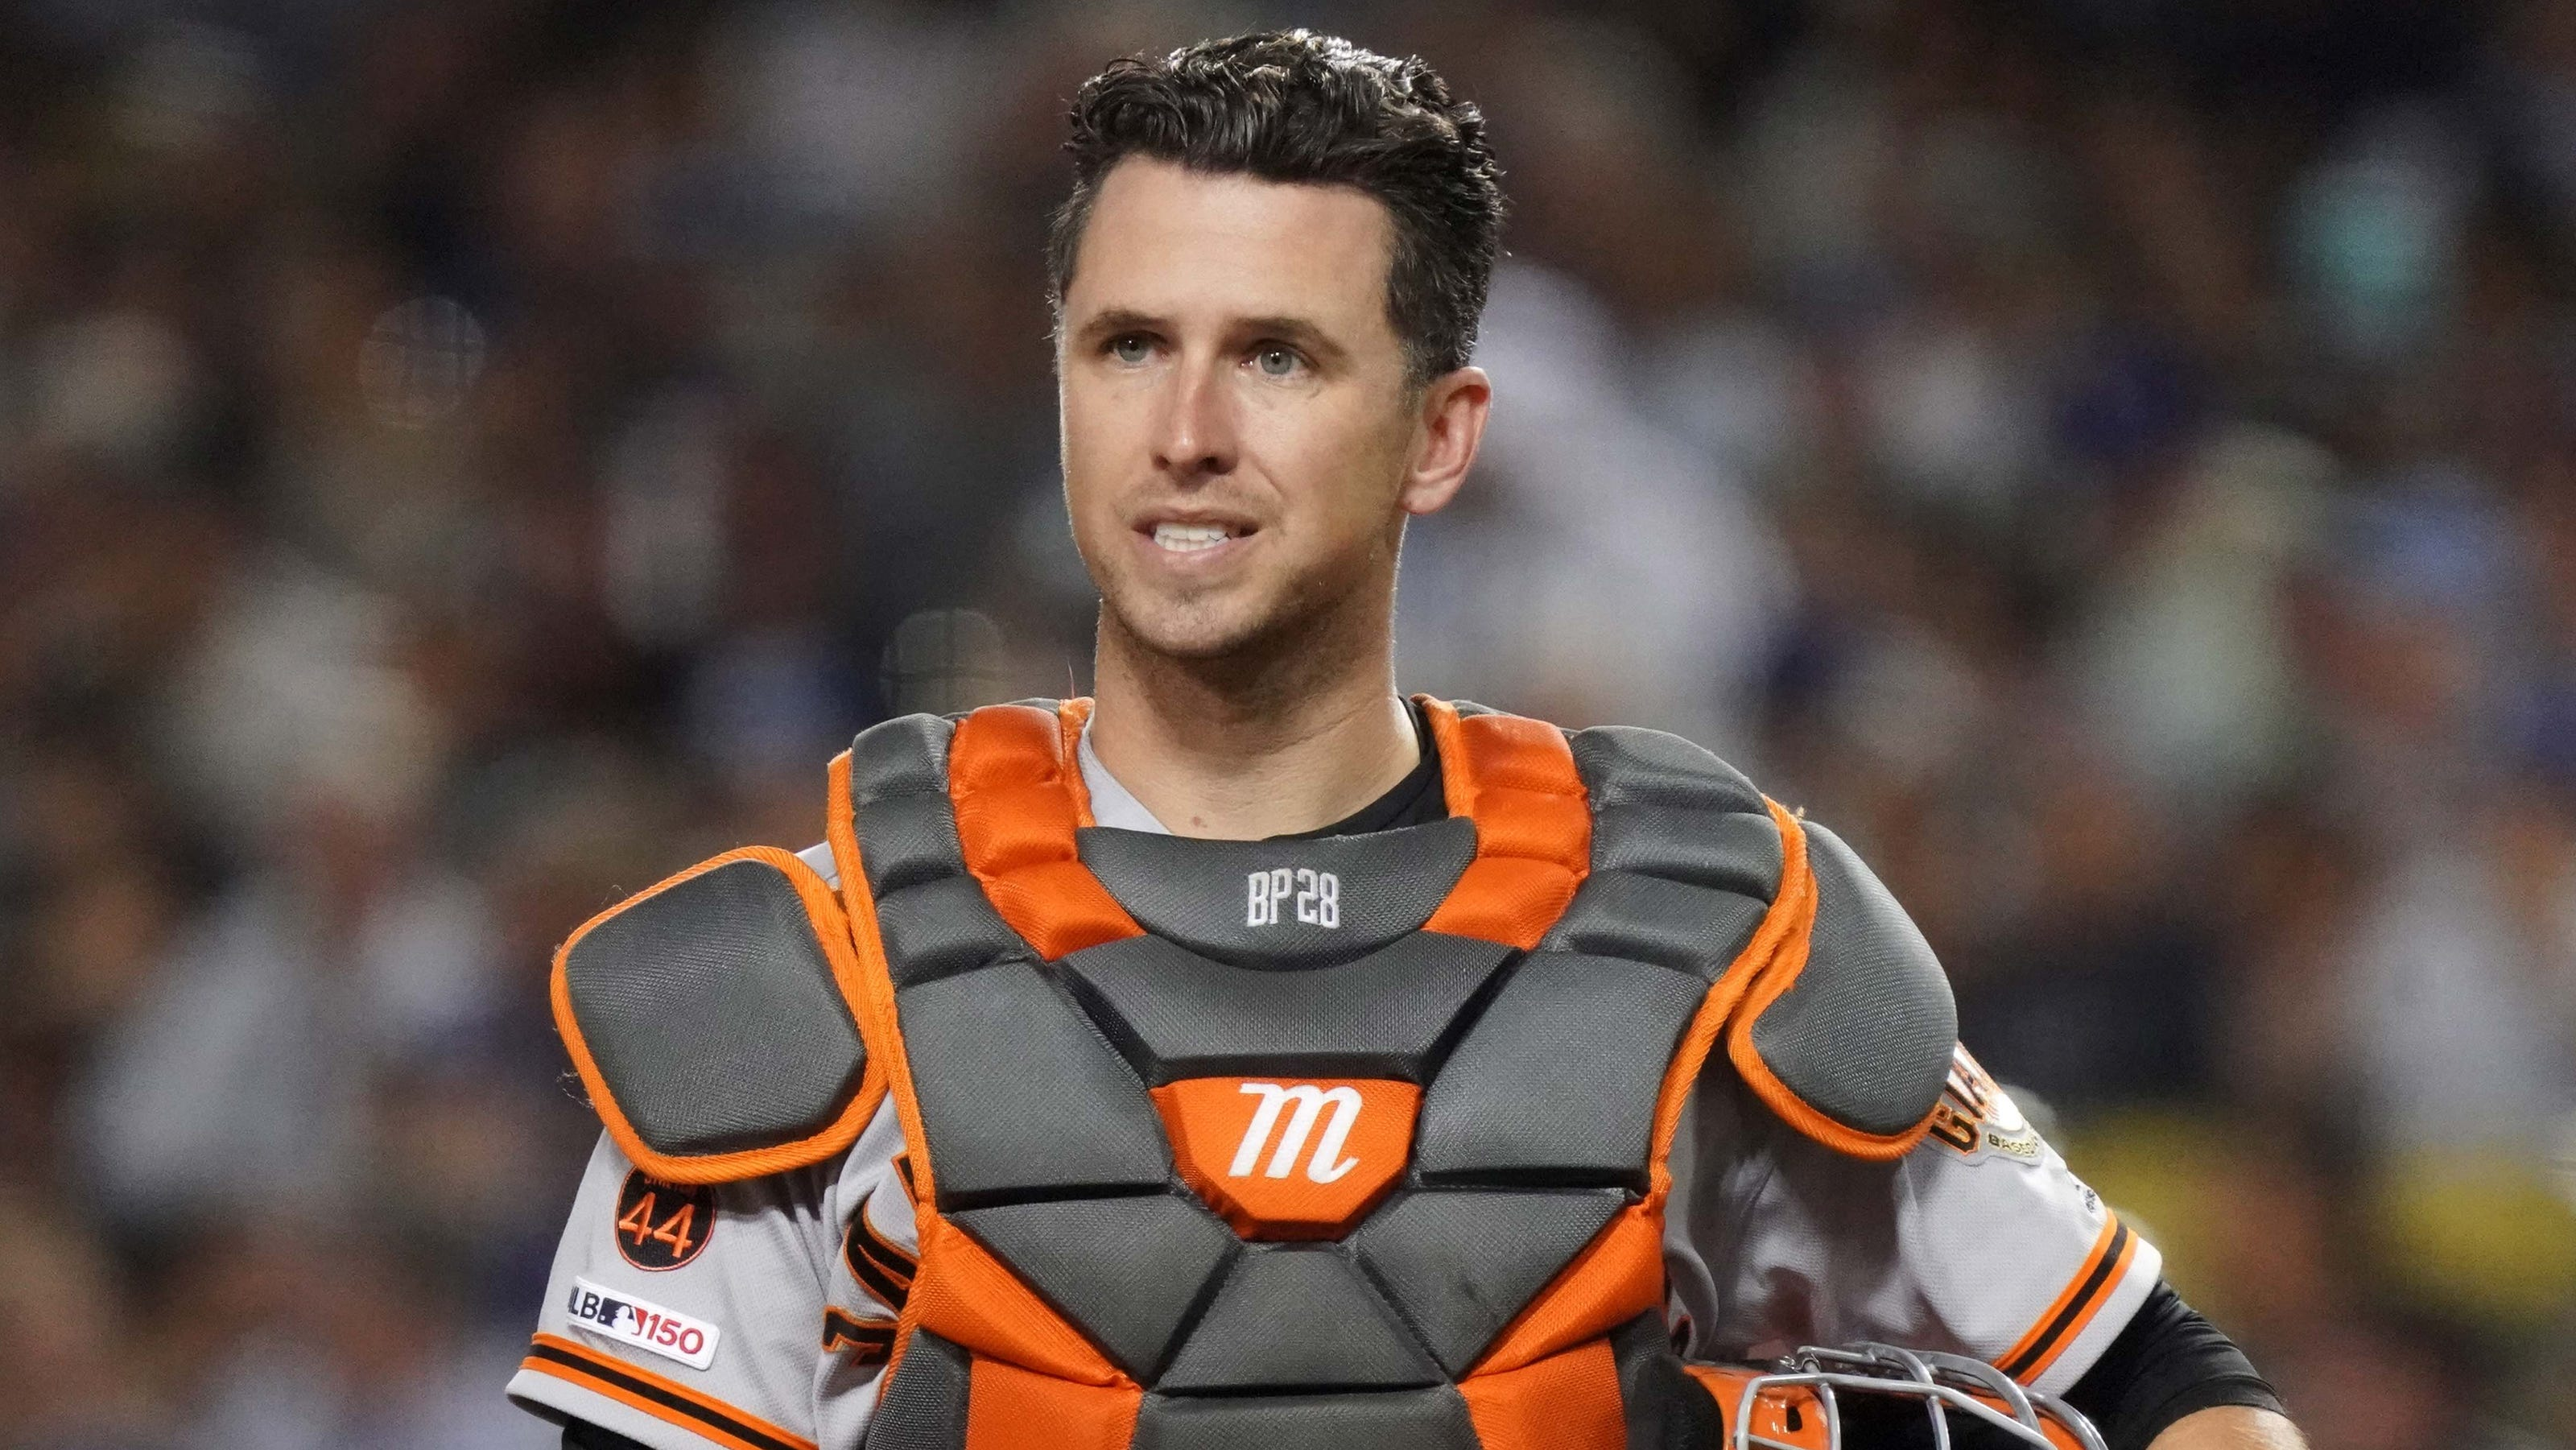 After concussion test, Giants Buster Posey cleared to play